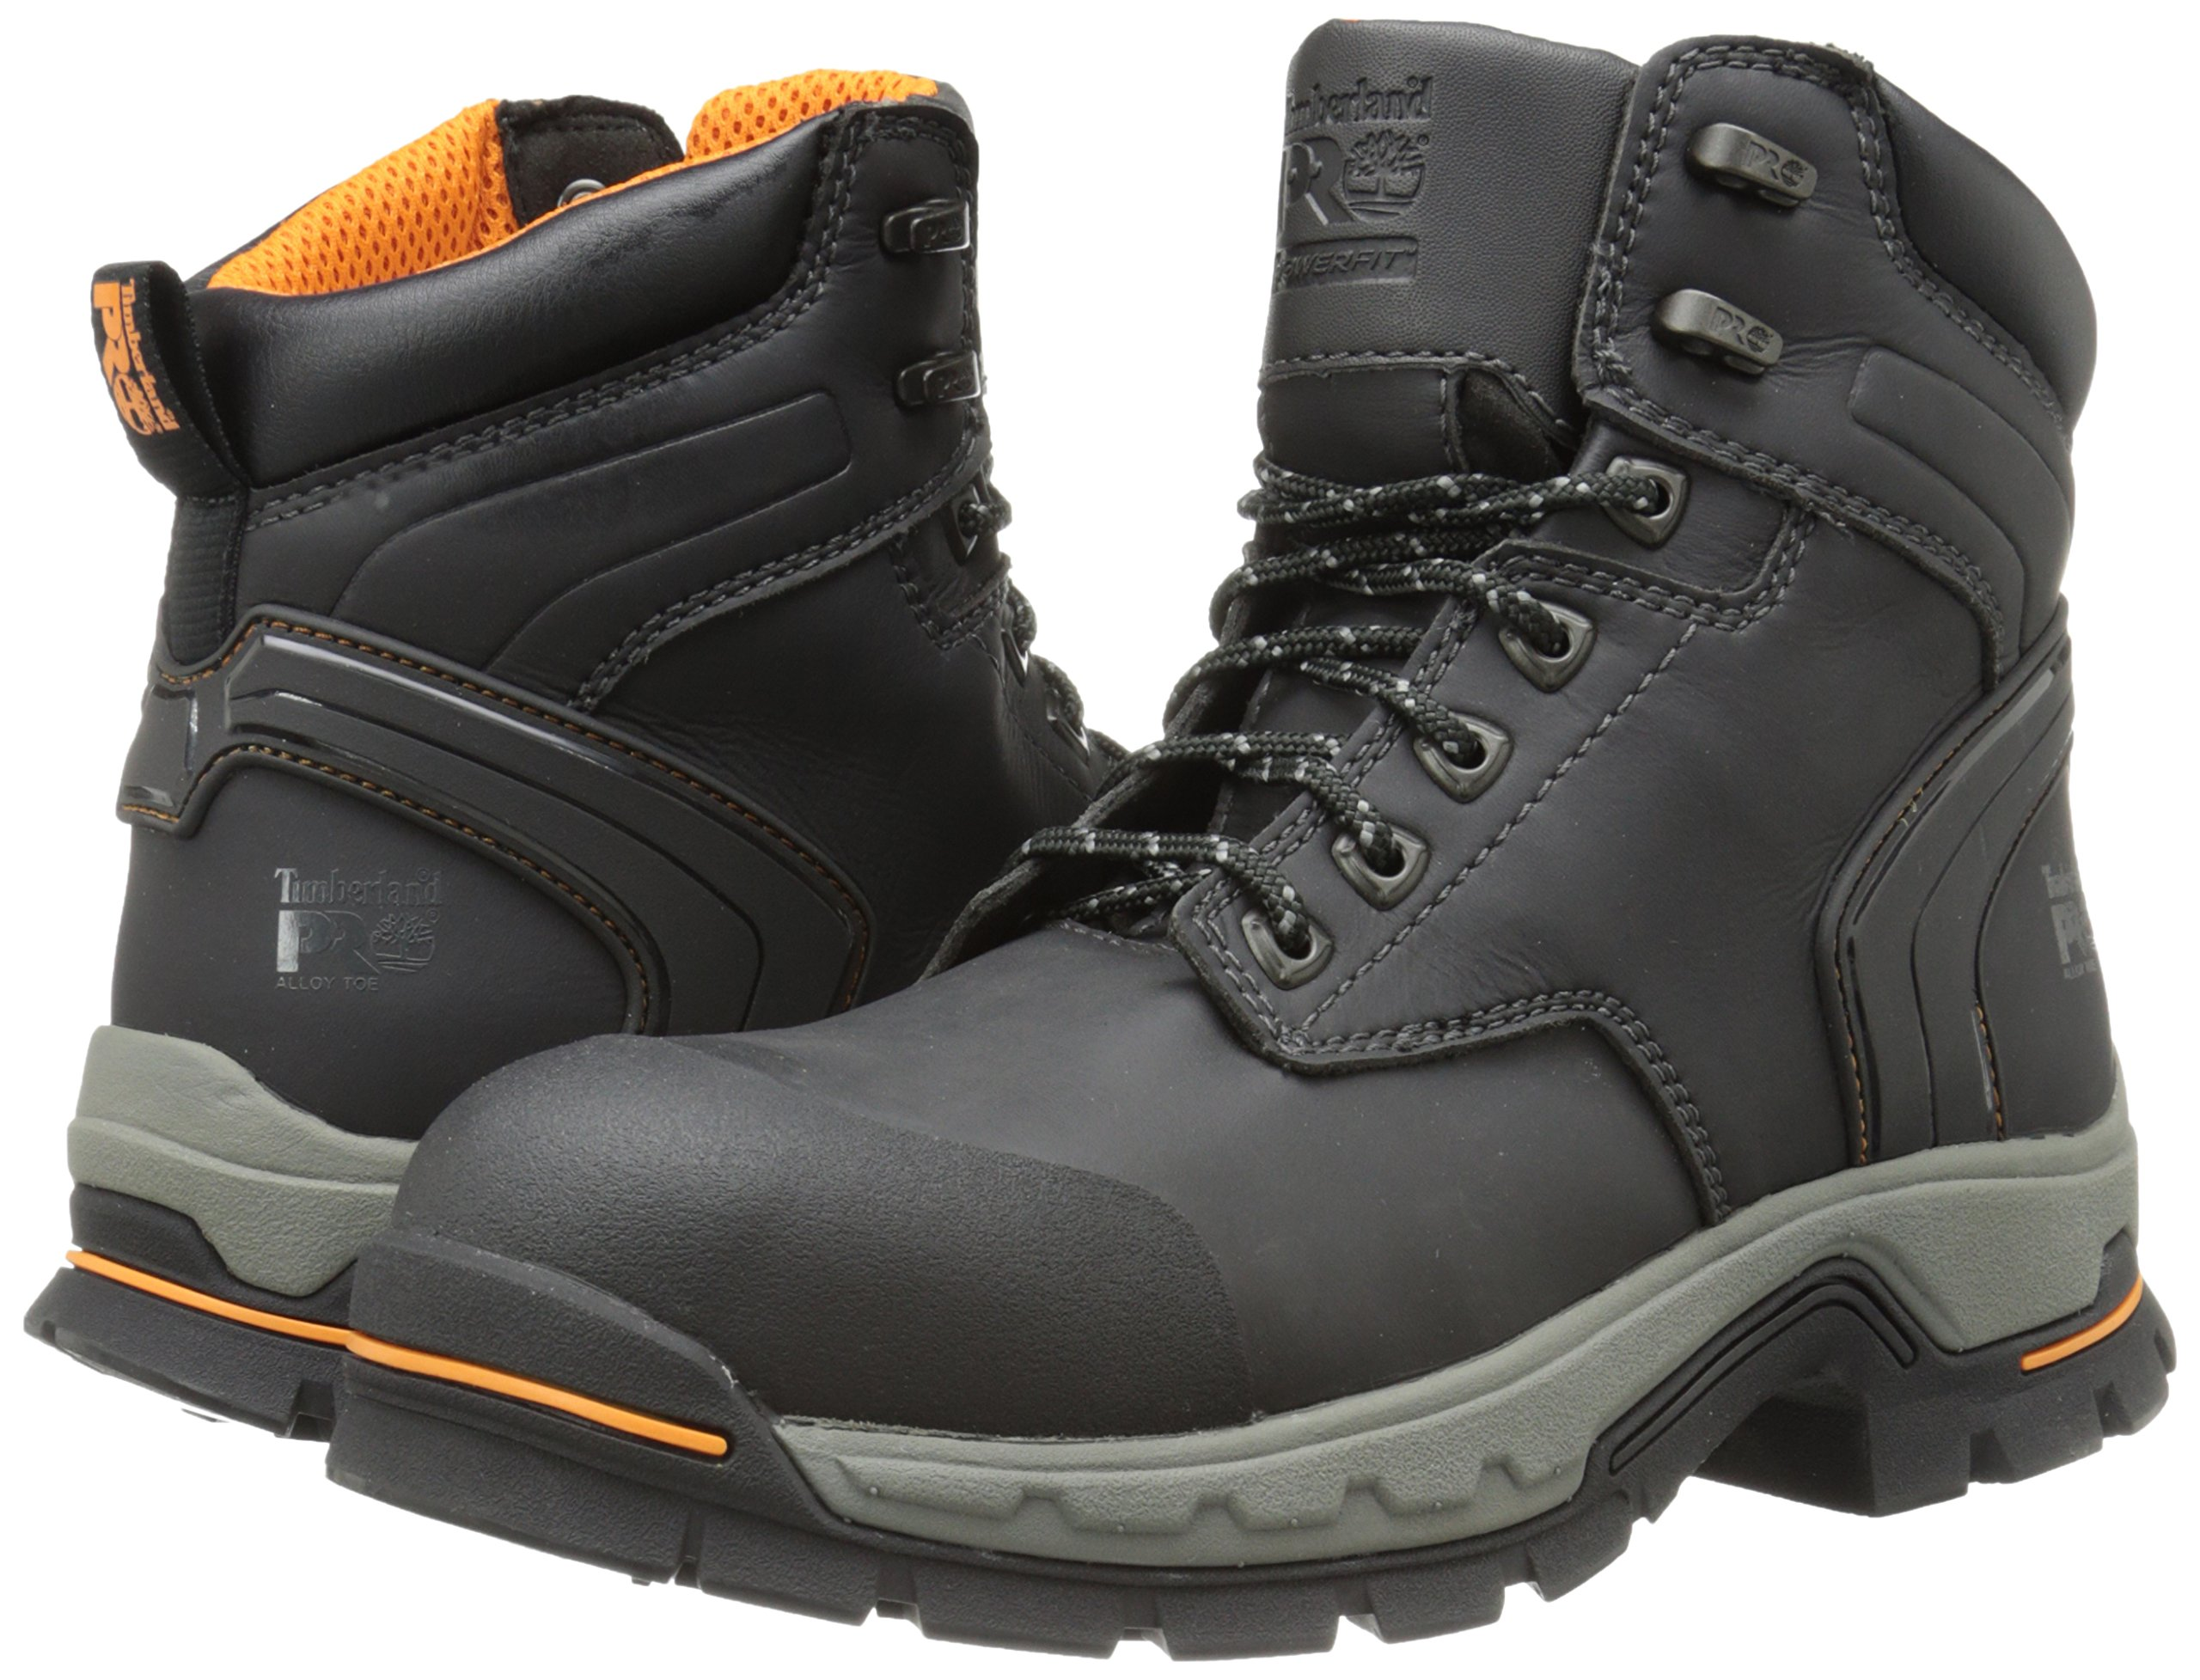 Timberland PRO Men's 6 Inch Stockdale Grip Max Alloy Toe Work and Hunt Boot, Black Microfiber, 5.5 M US by Timberland PRO (Image #6)